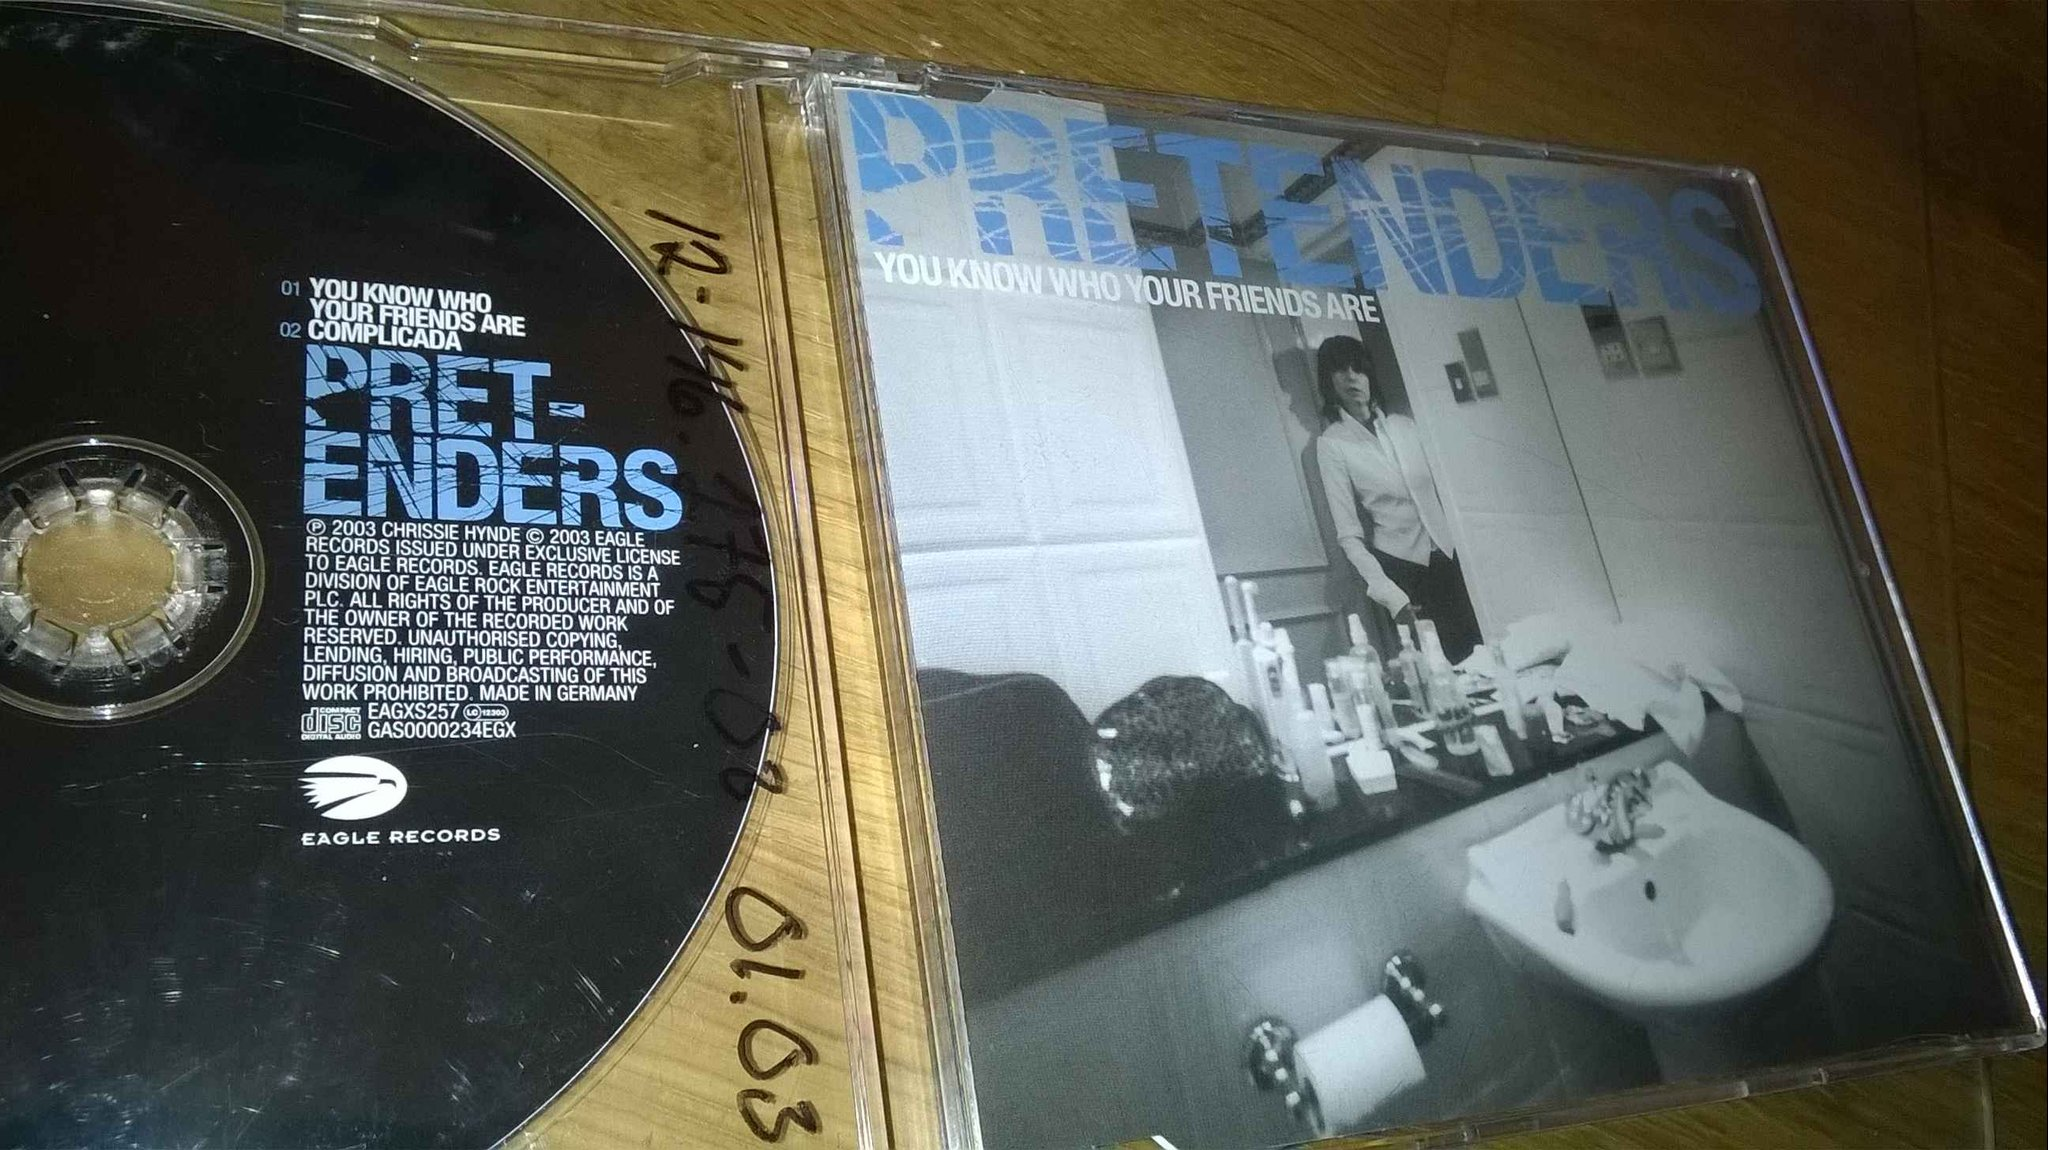 Pretenders - You Know Who Your Friends Are, CD, Single